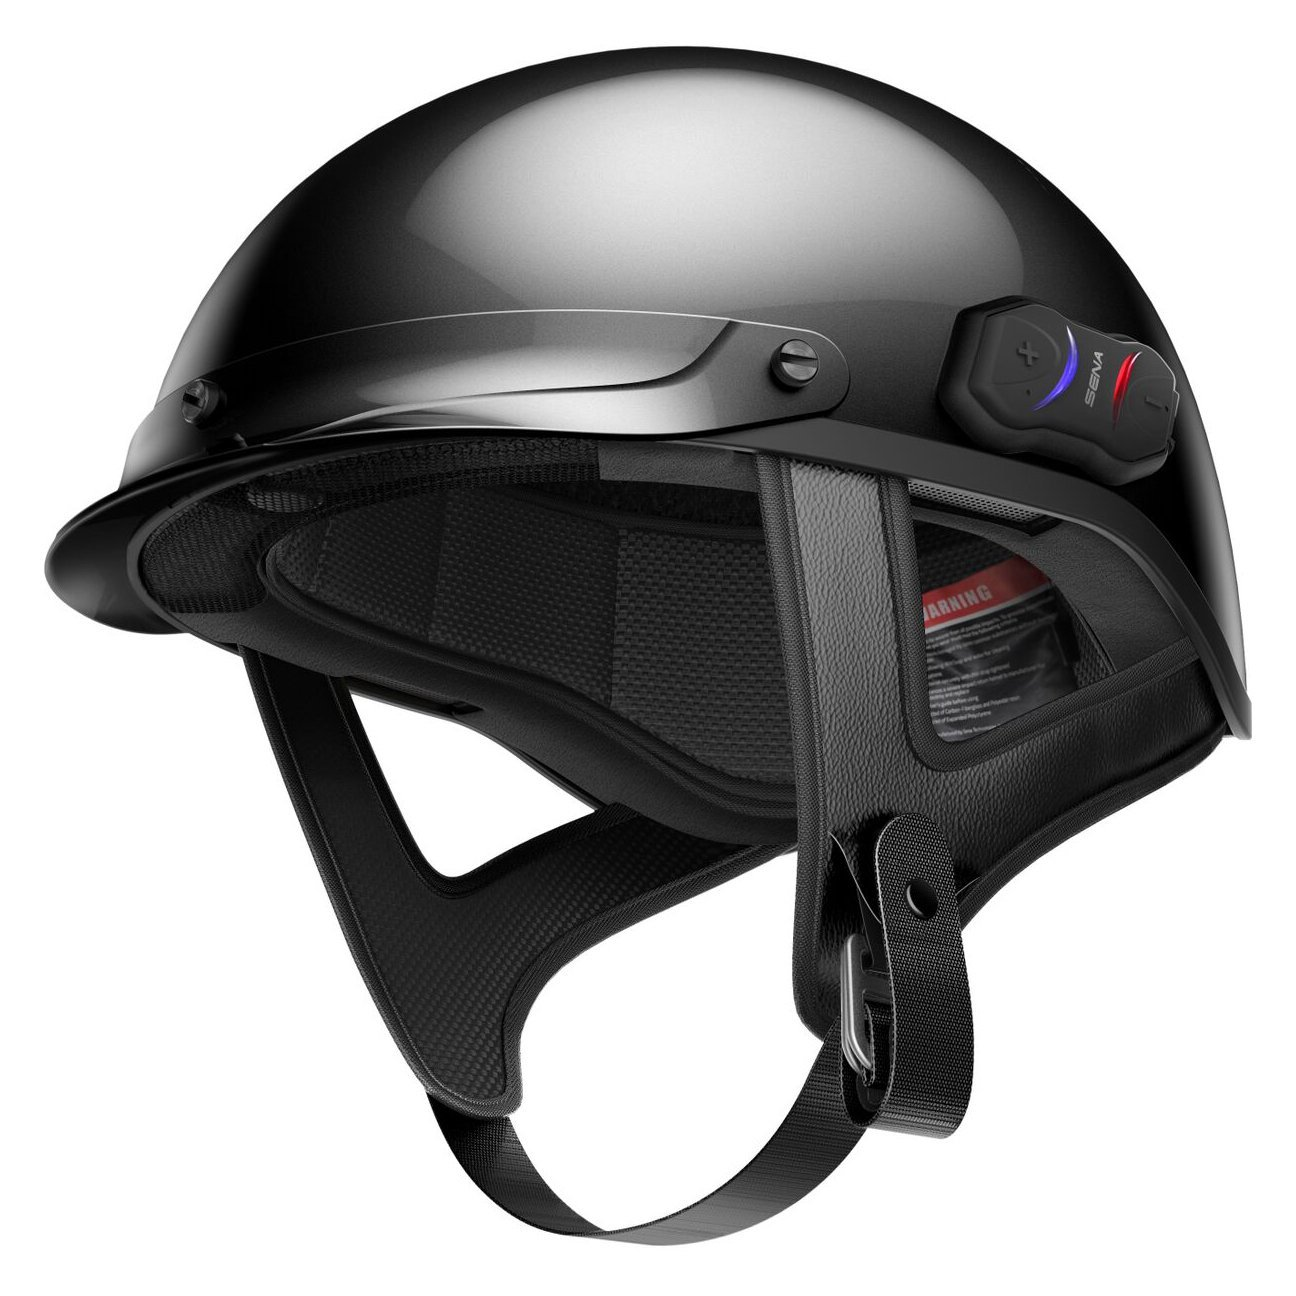 Bell Motorcycle Helmets - Protecting You Since 1954